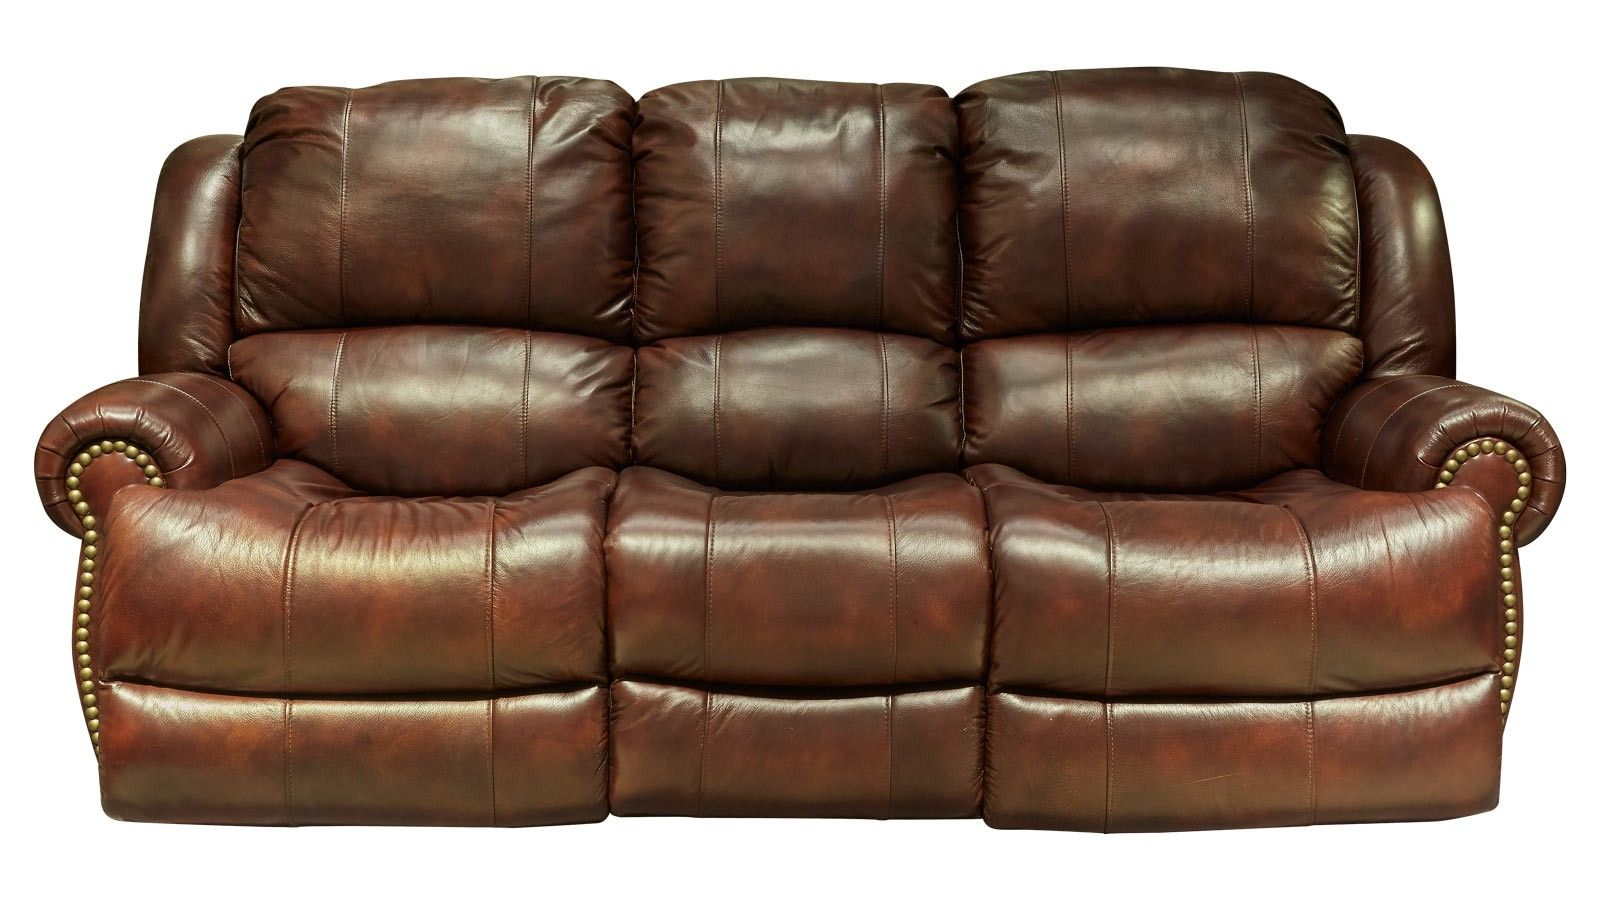 entertainment 2 glider leather reclining sofa | products